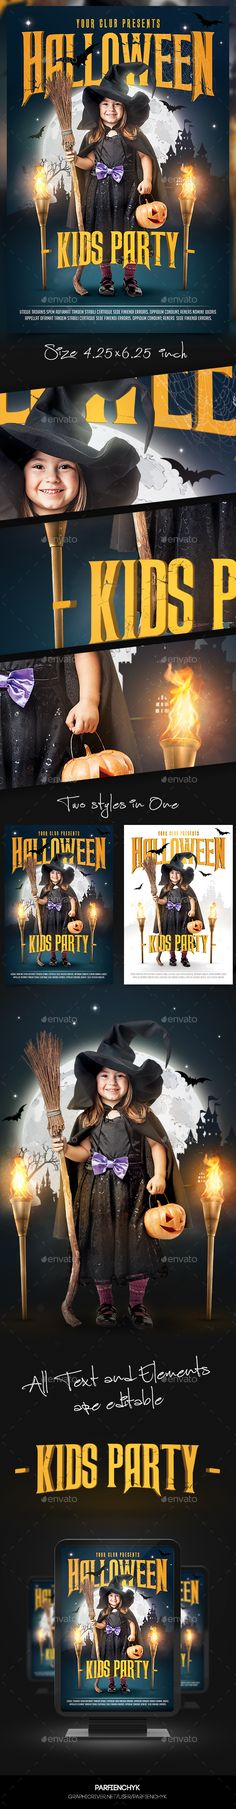 Kids Halloween Flyer Template — Photoshop PSD #magic #halloween party • Download here → https://graphicriver.net/item/kids-halloween-flyer-template/13065793?ref=pxcr